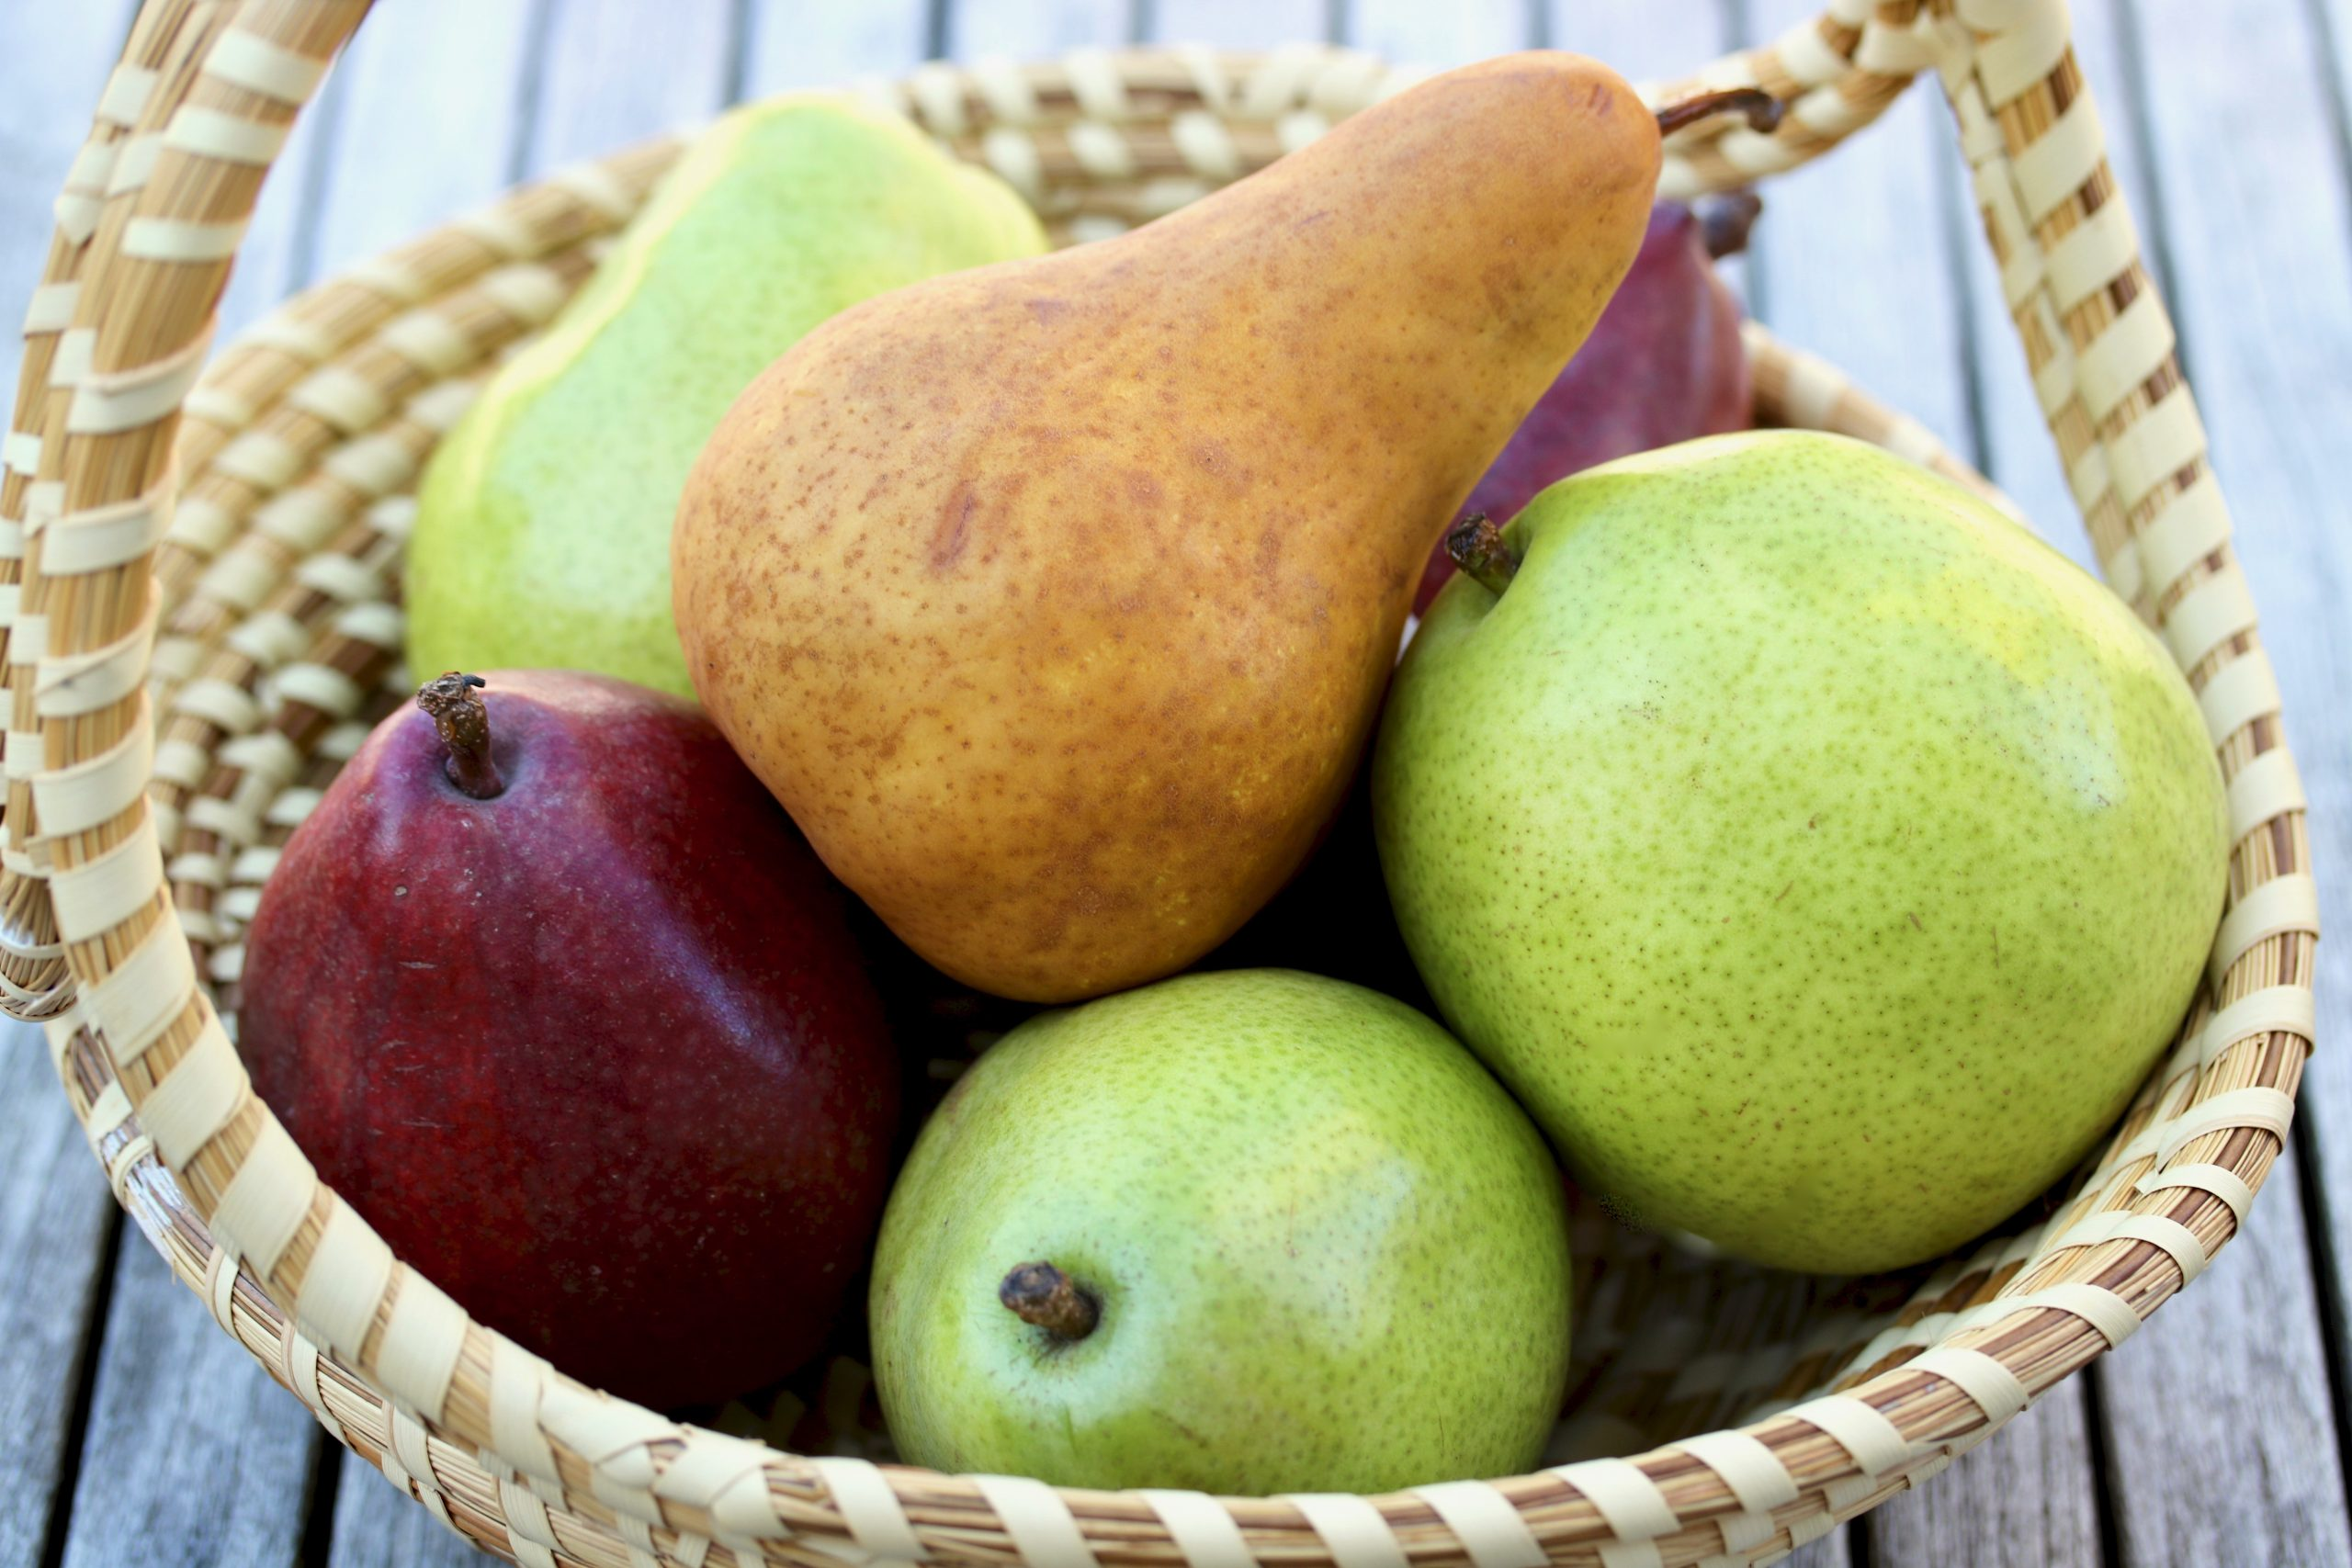 basket of pears in red, green and brown